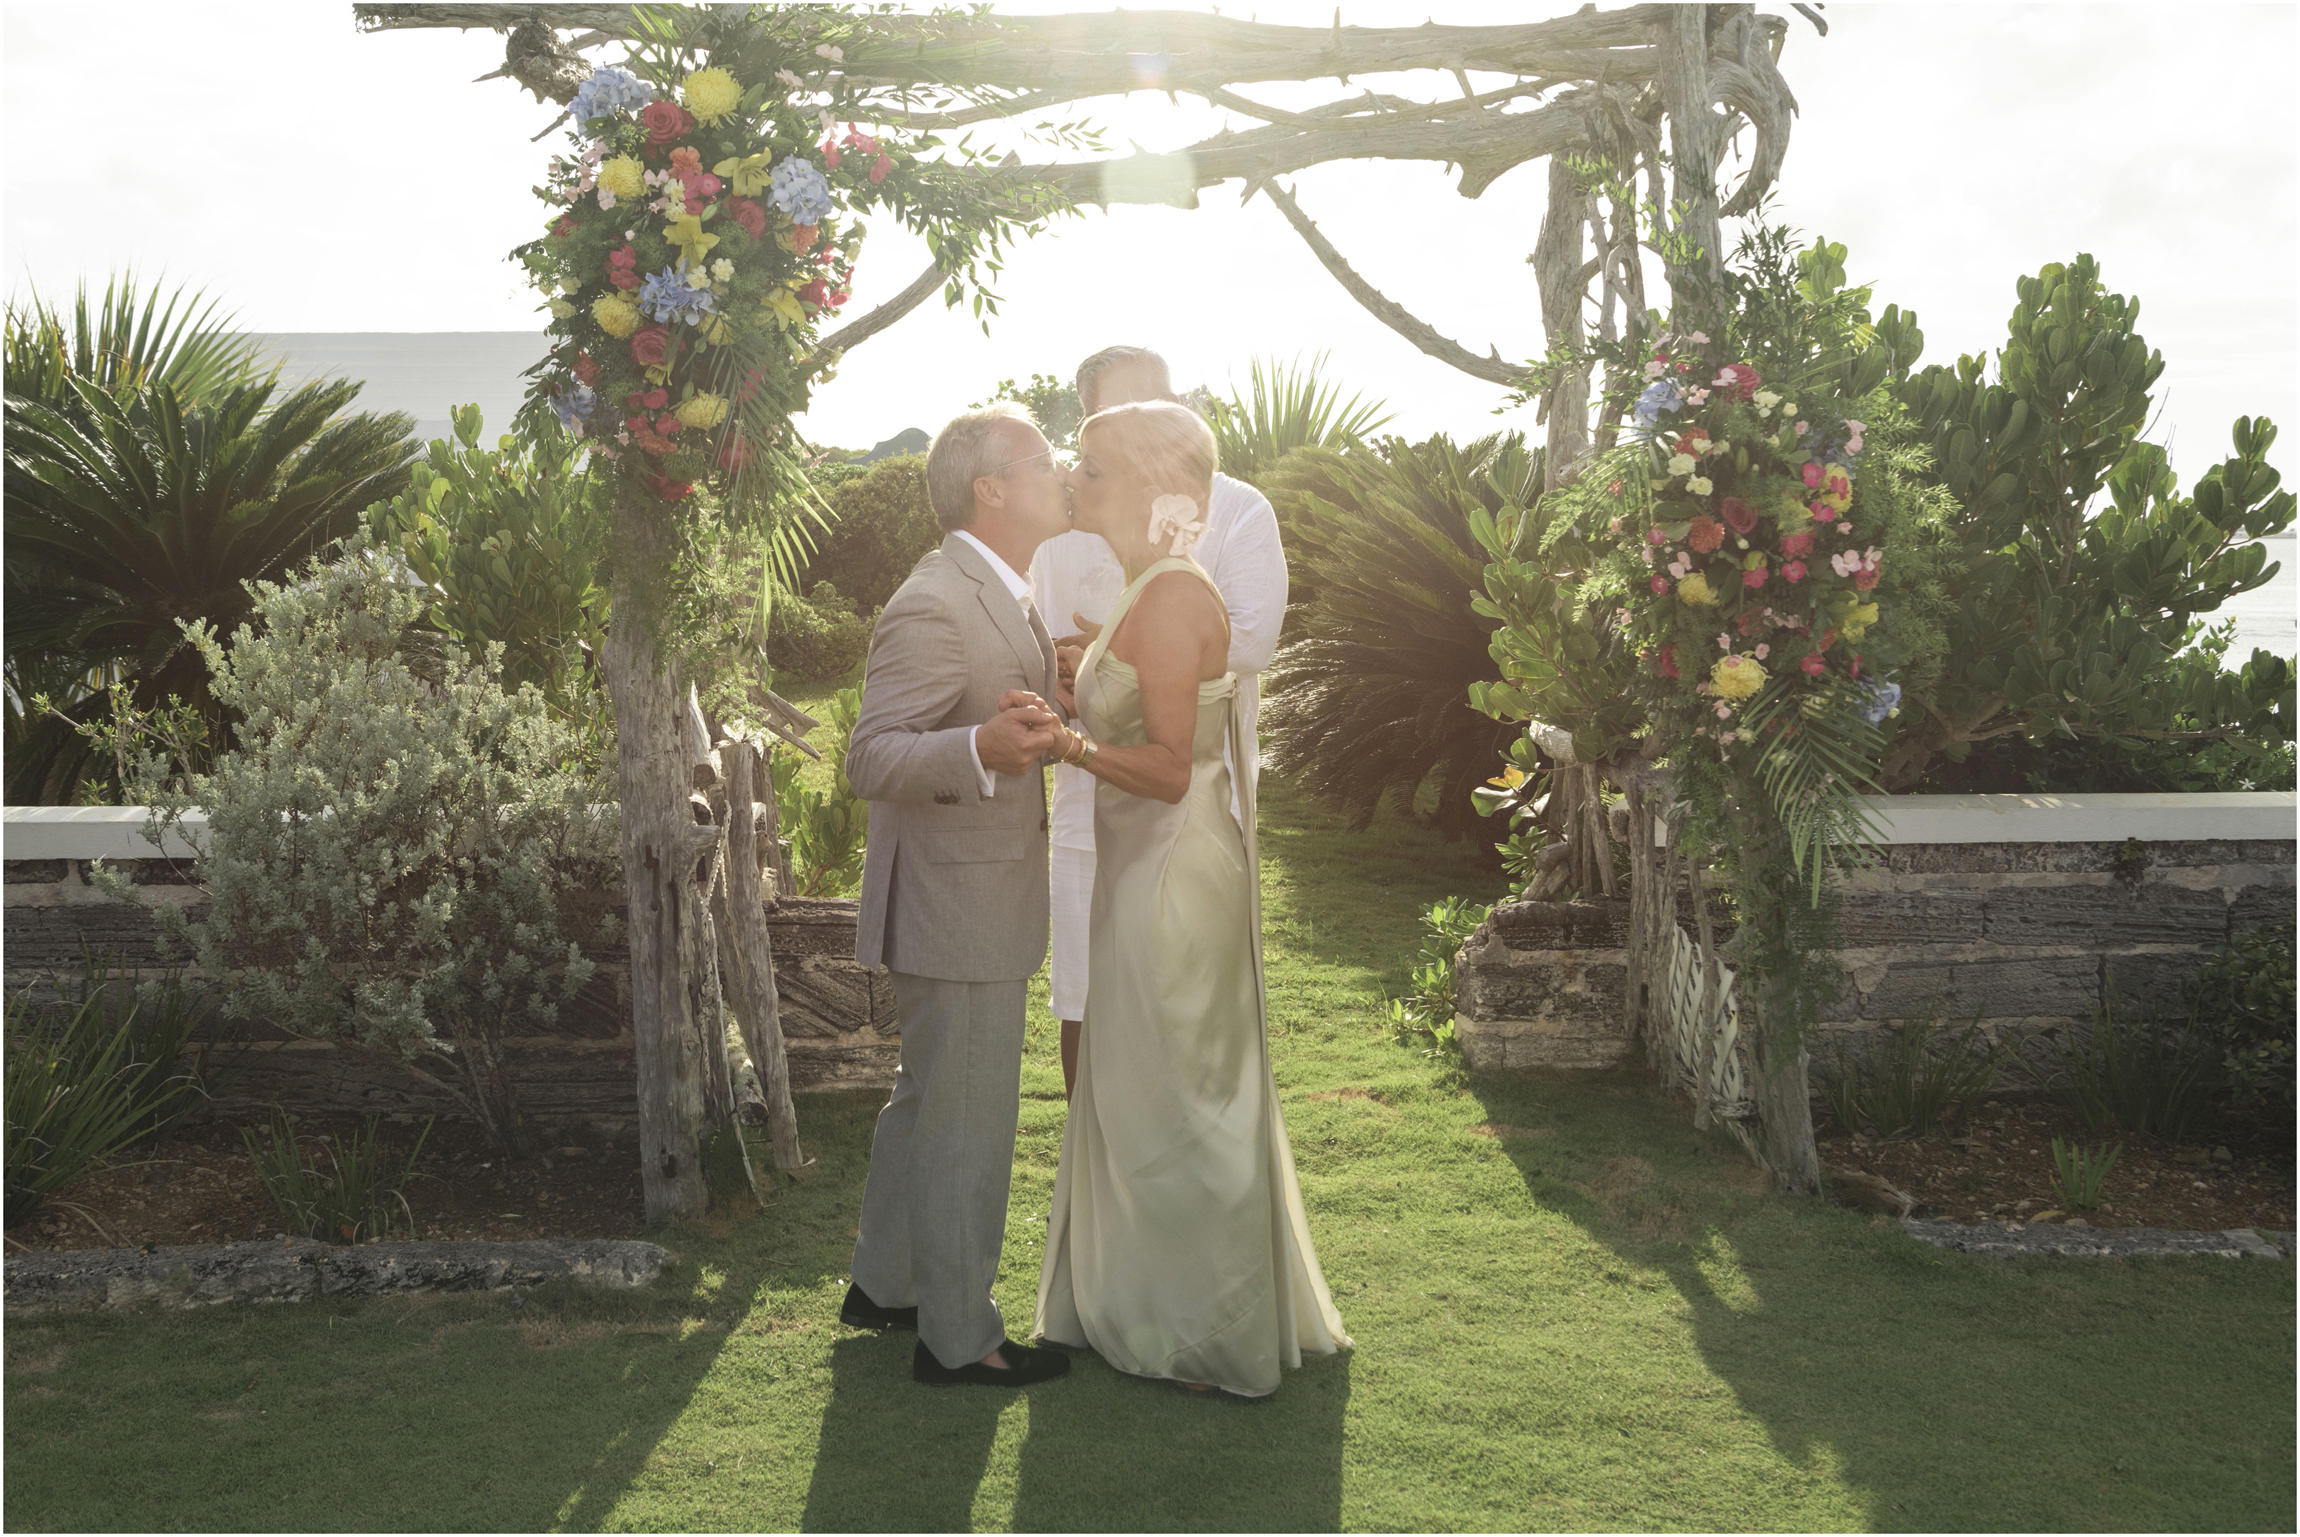 ©FianderFoto_Bermuda_Wedding_Photographer_Long_Island_Bermuda_Nancy_Ray_072.jpg